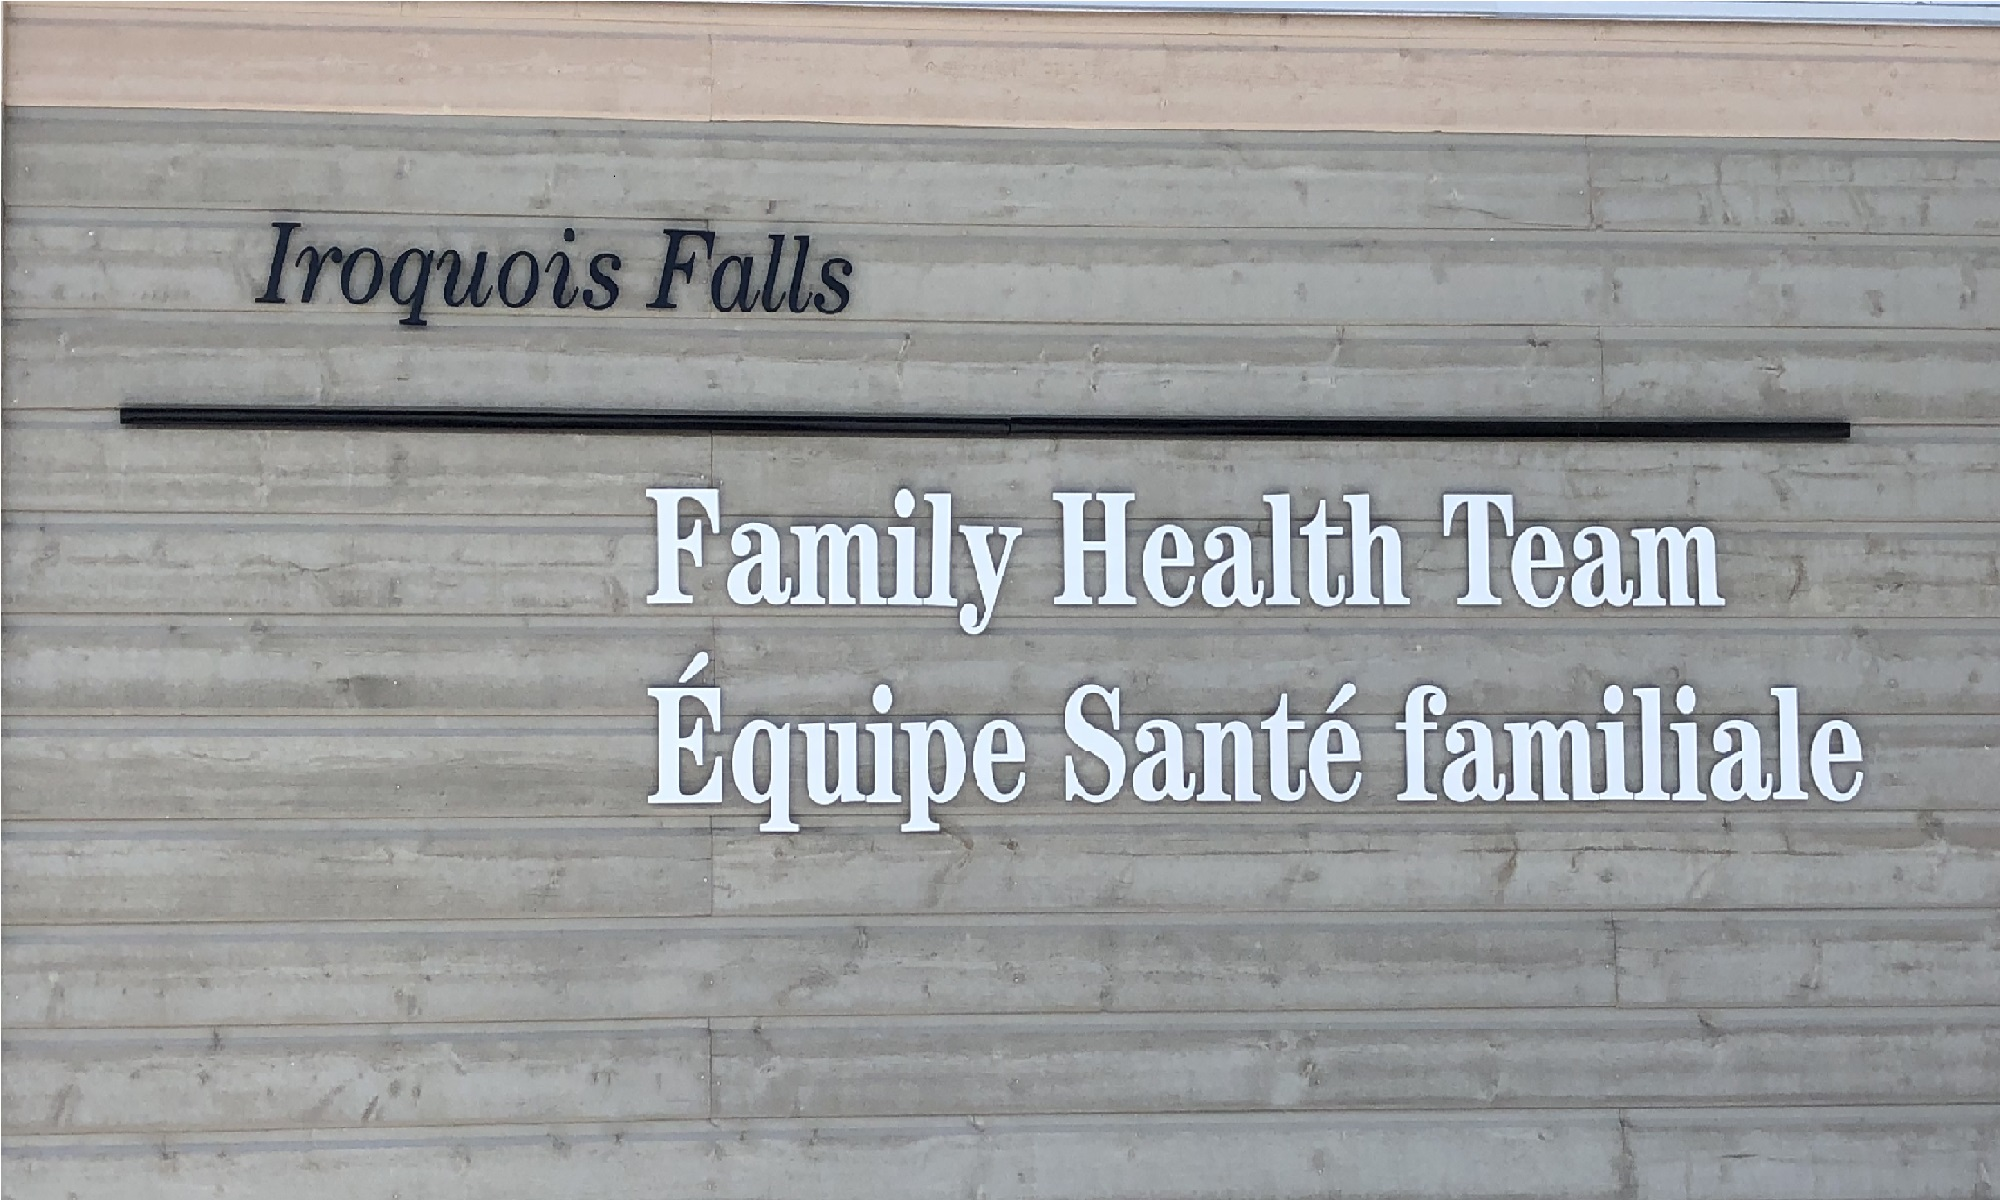 Iroquois Falls Family Health Team – Iroquois Falls Family